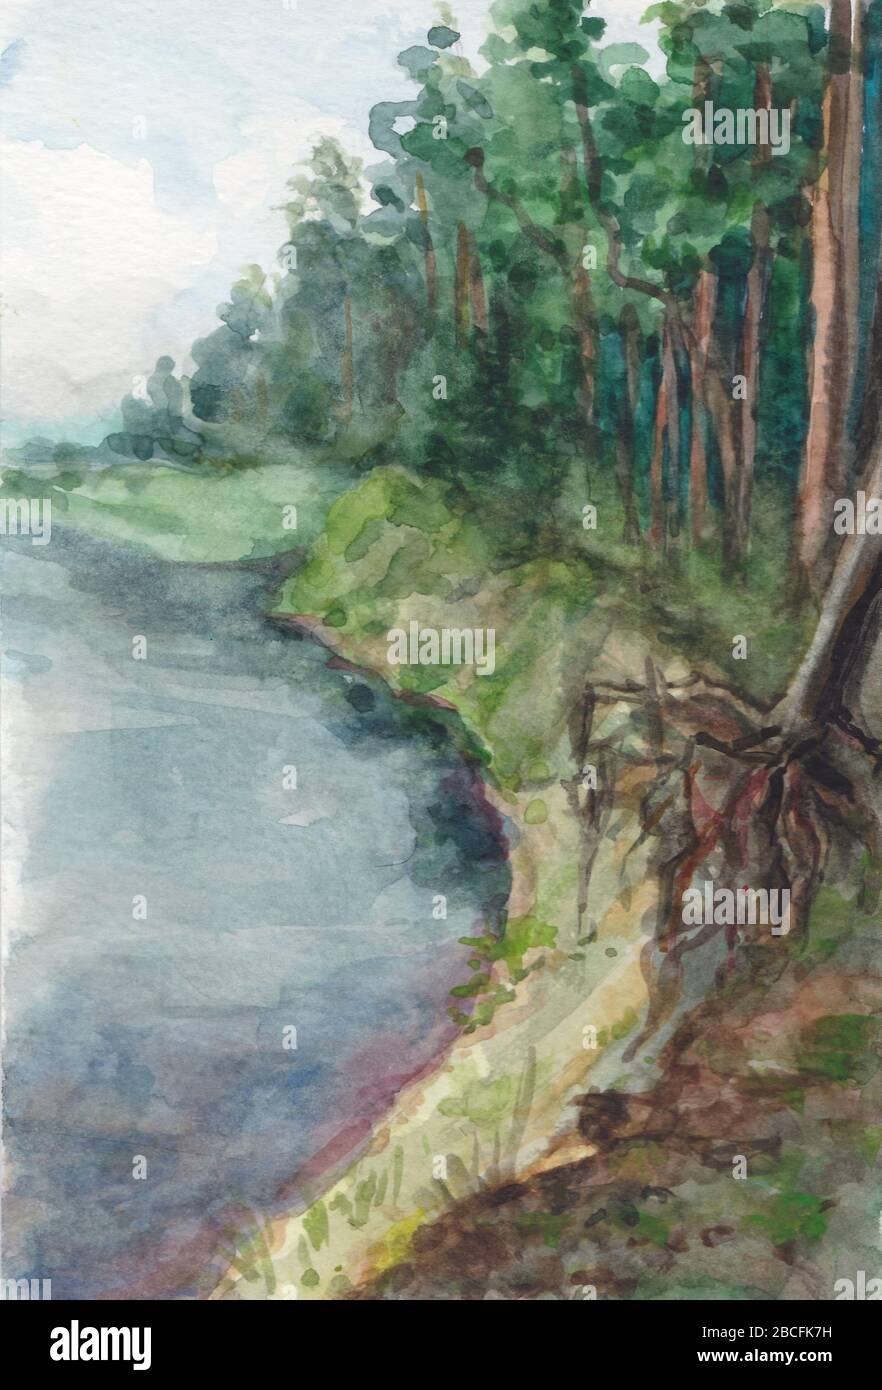 watercolor landscape high resolution stock photography and images alamy https www alamy com watercolor landscape the majestic northern expanse of the mighty river flowing among the spruce forest image351927621 html